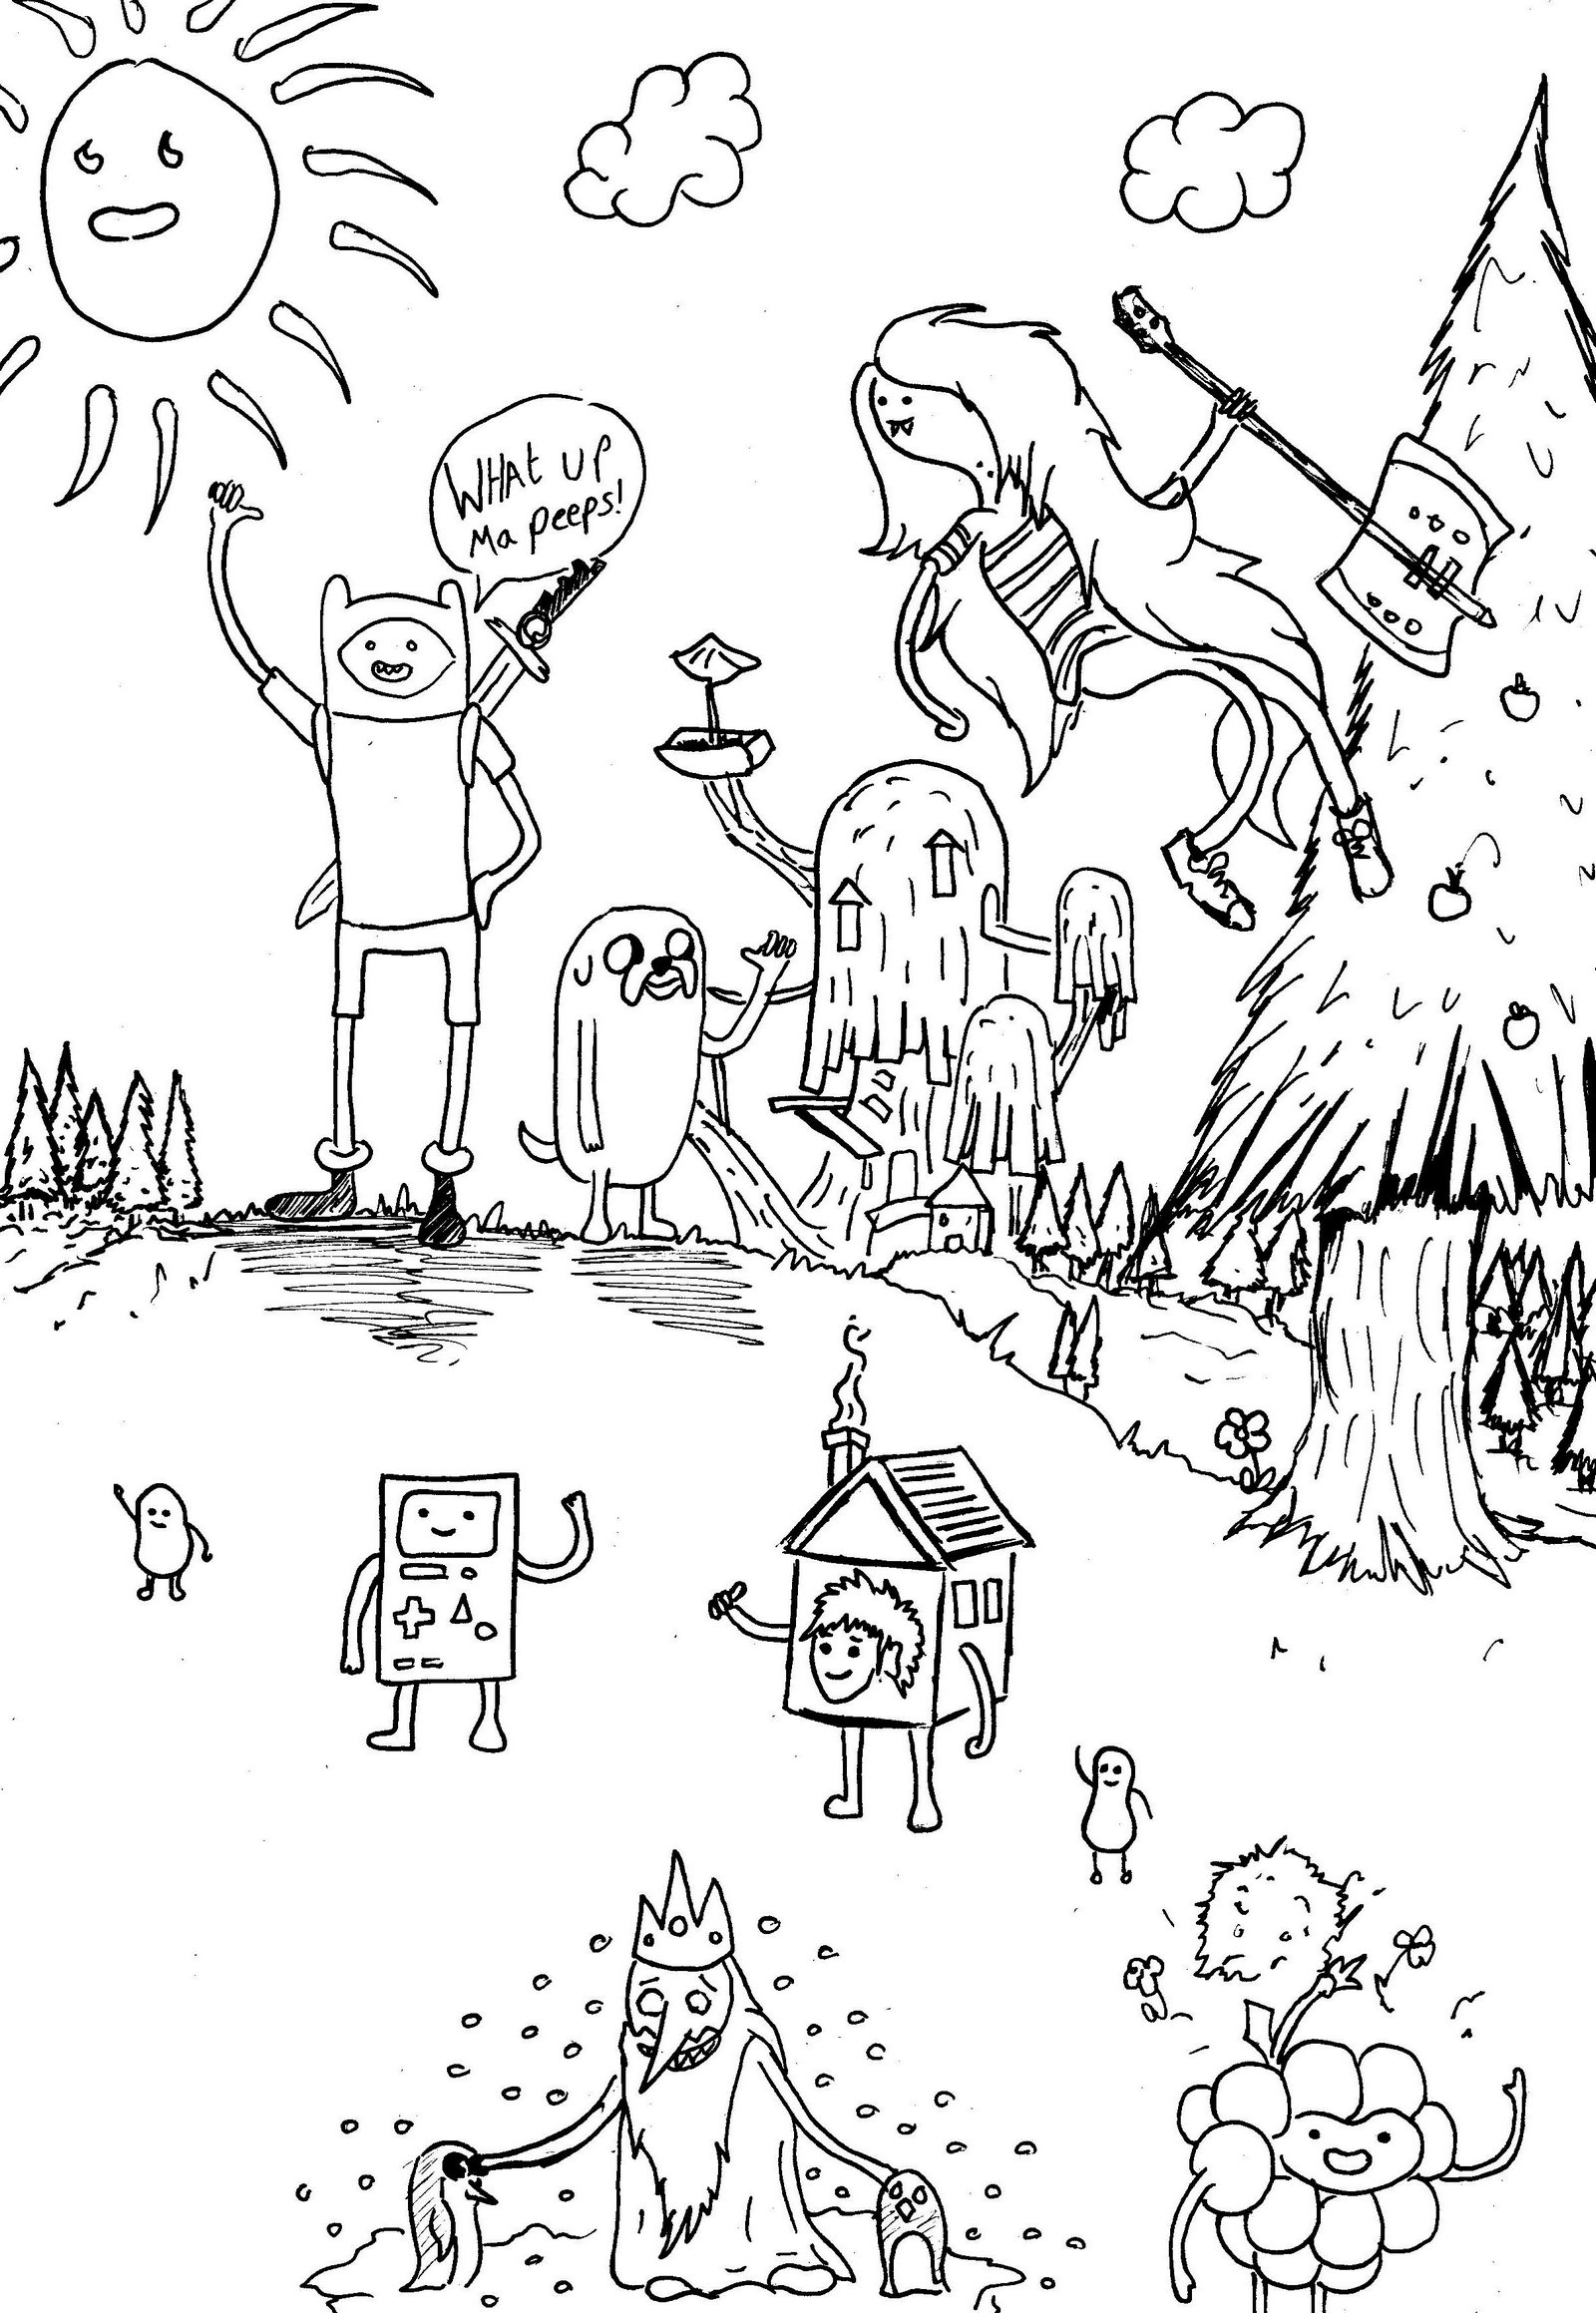 Adventure Time Doodle Cartoon Network Coloring Page